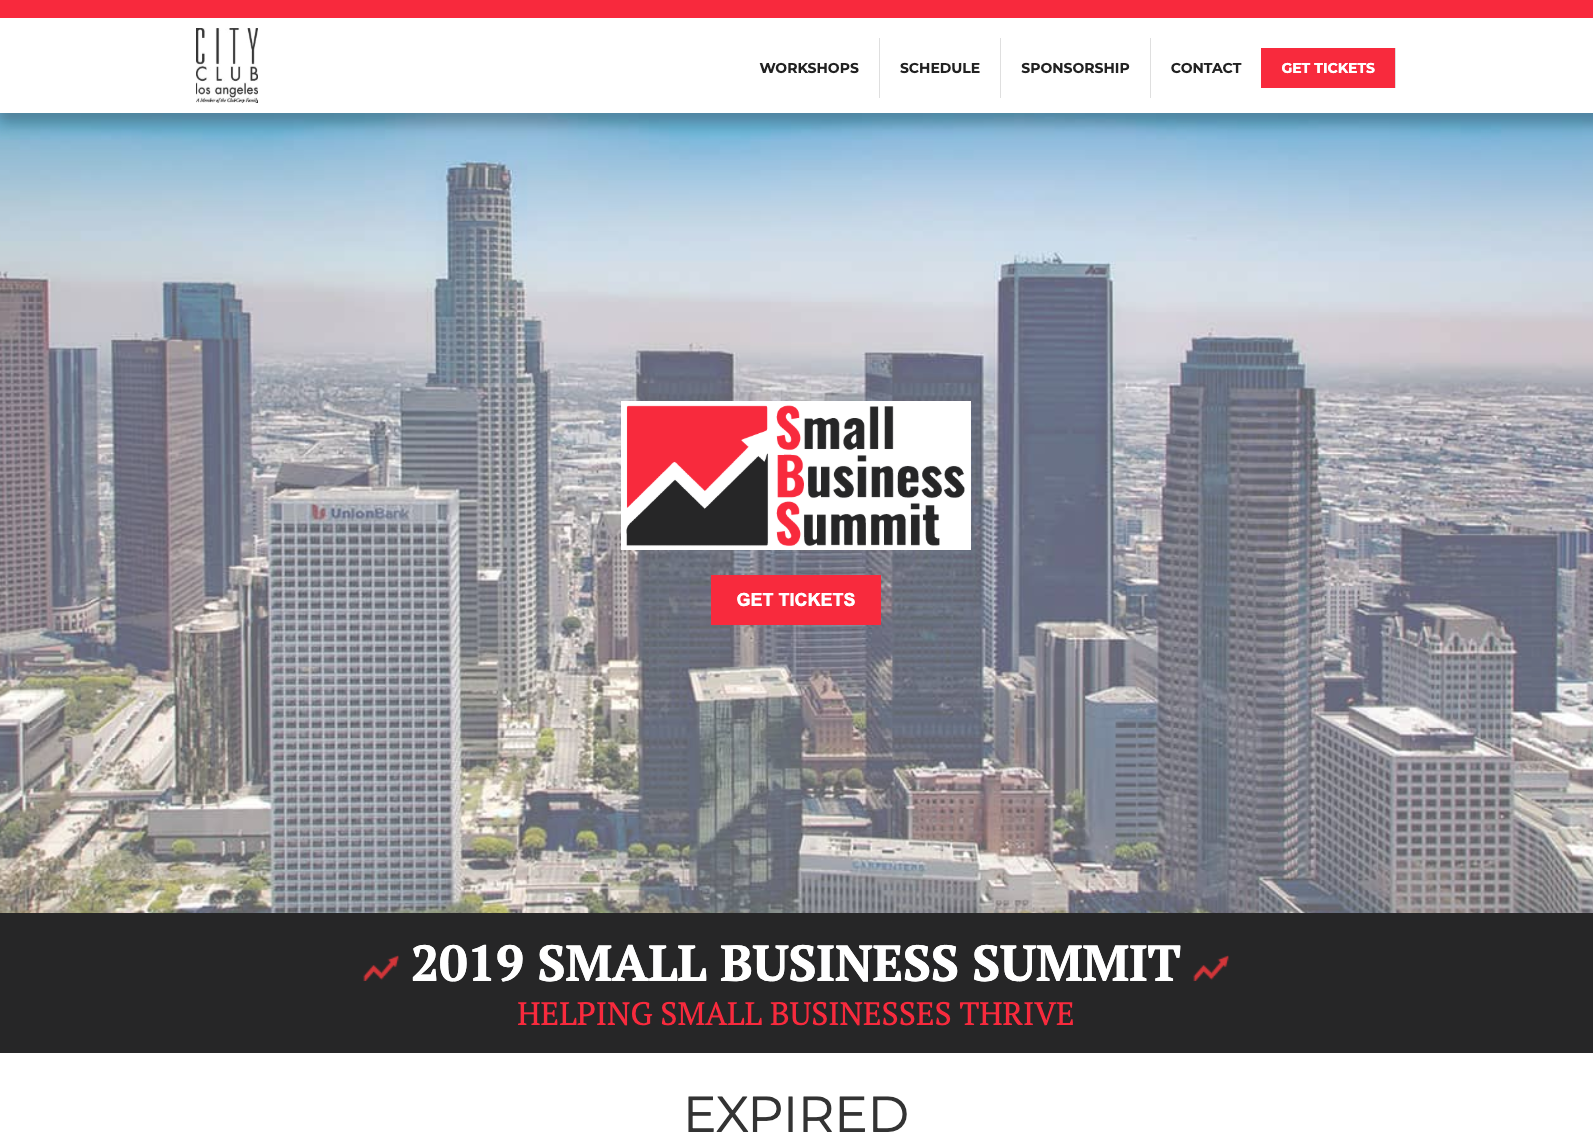 Small Business Summit website